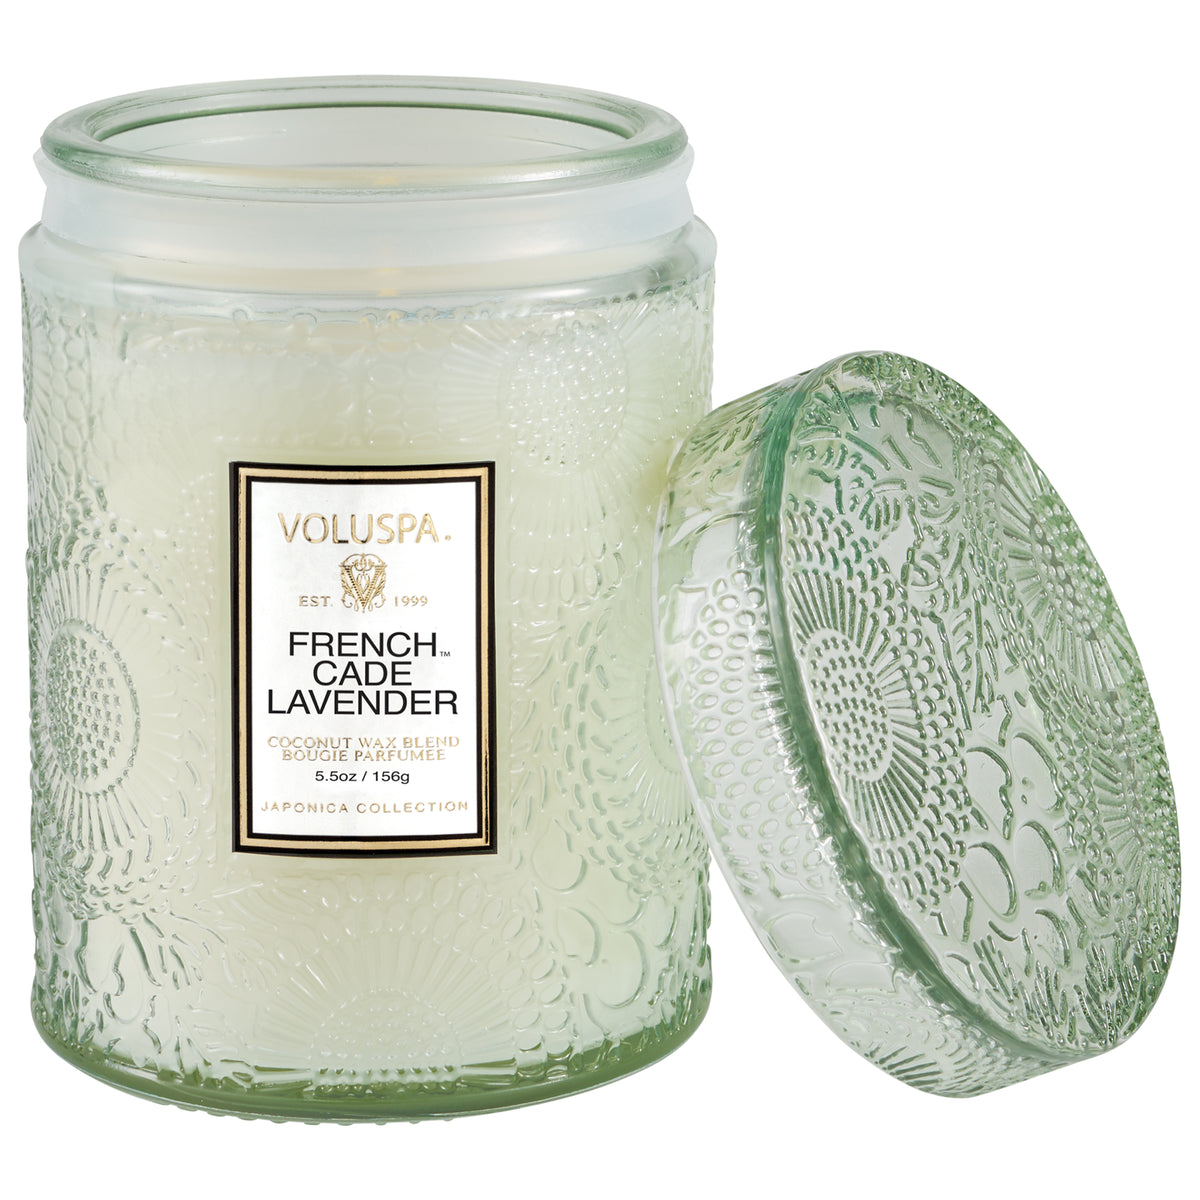 French Cade Lavender - Small Jar Candle - 2